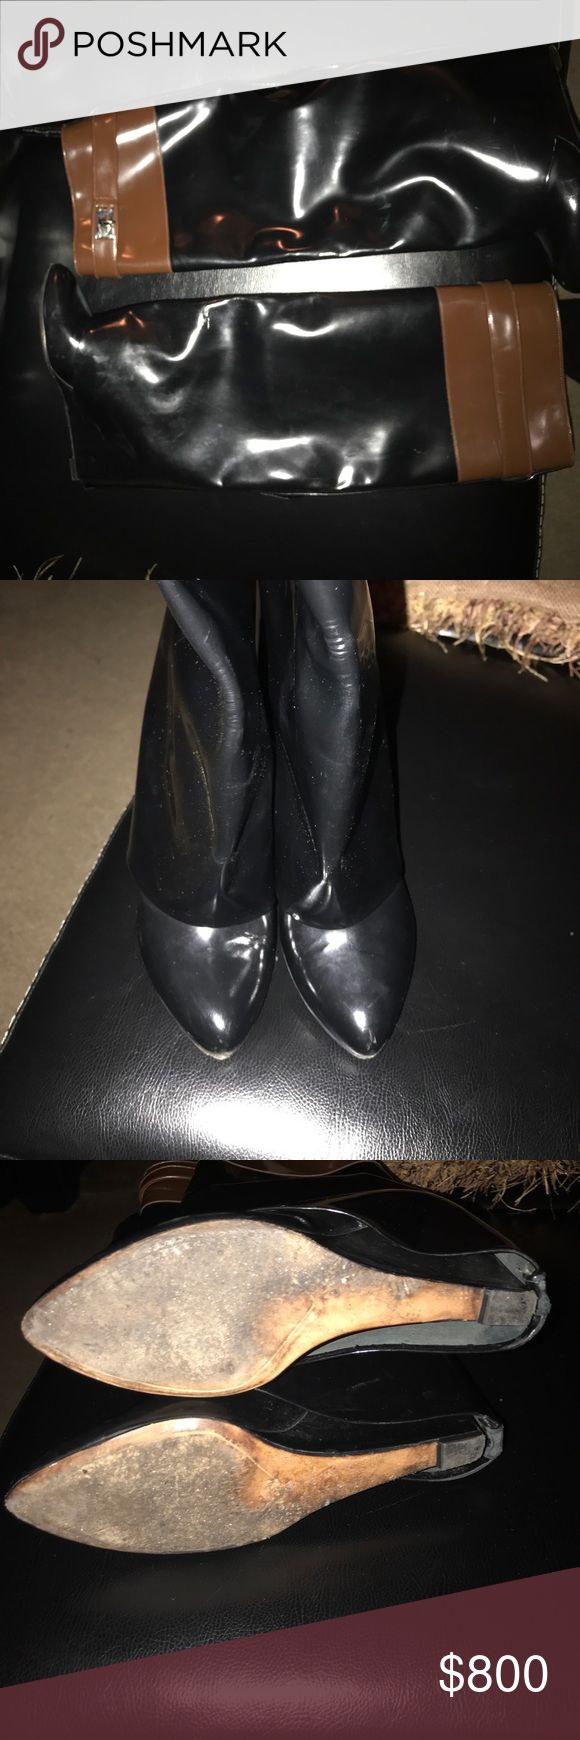 Givenchy Shark Boots/ 24 hour Sale 100% Authentic  PreOwned Shark Boots .  Size 10 EU 40 . Offers accepted Givenchy Shoes Heeled Boots